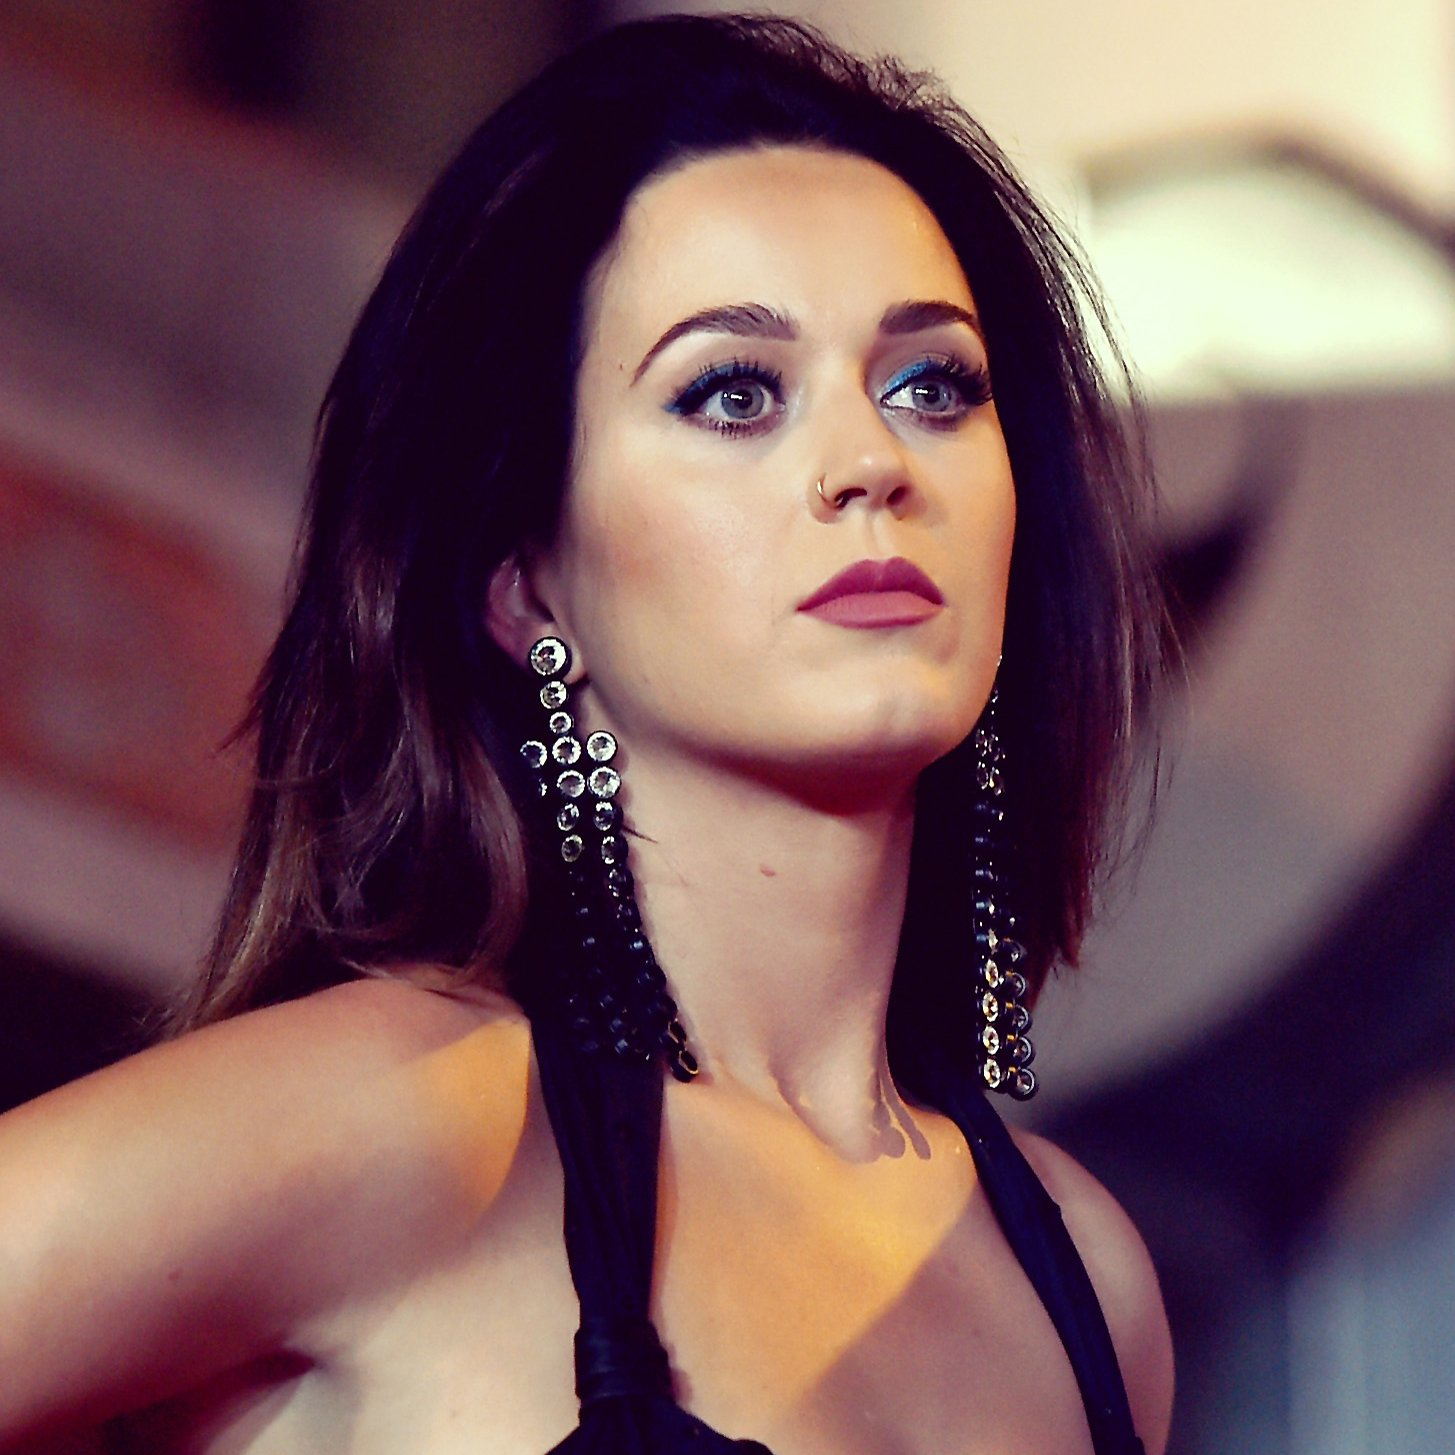 Katy Perry Net Worth, Age, Height, Profile, Songs, Instagram